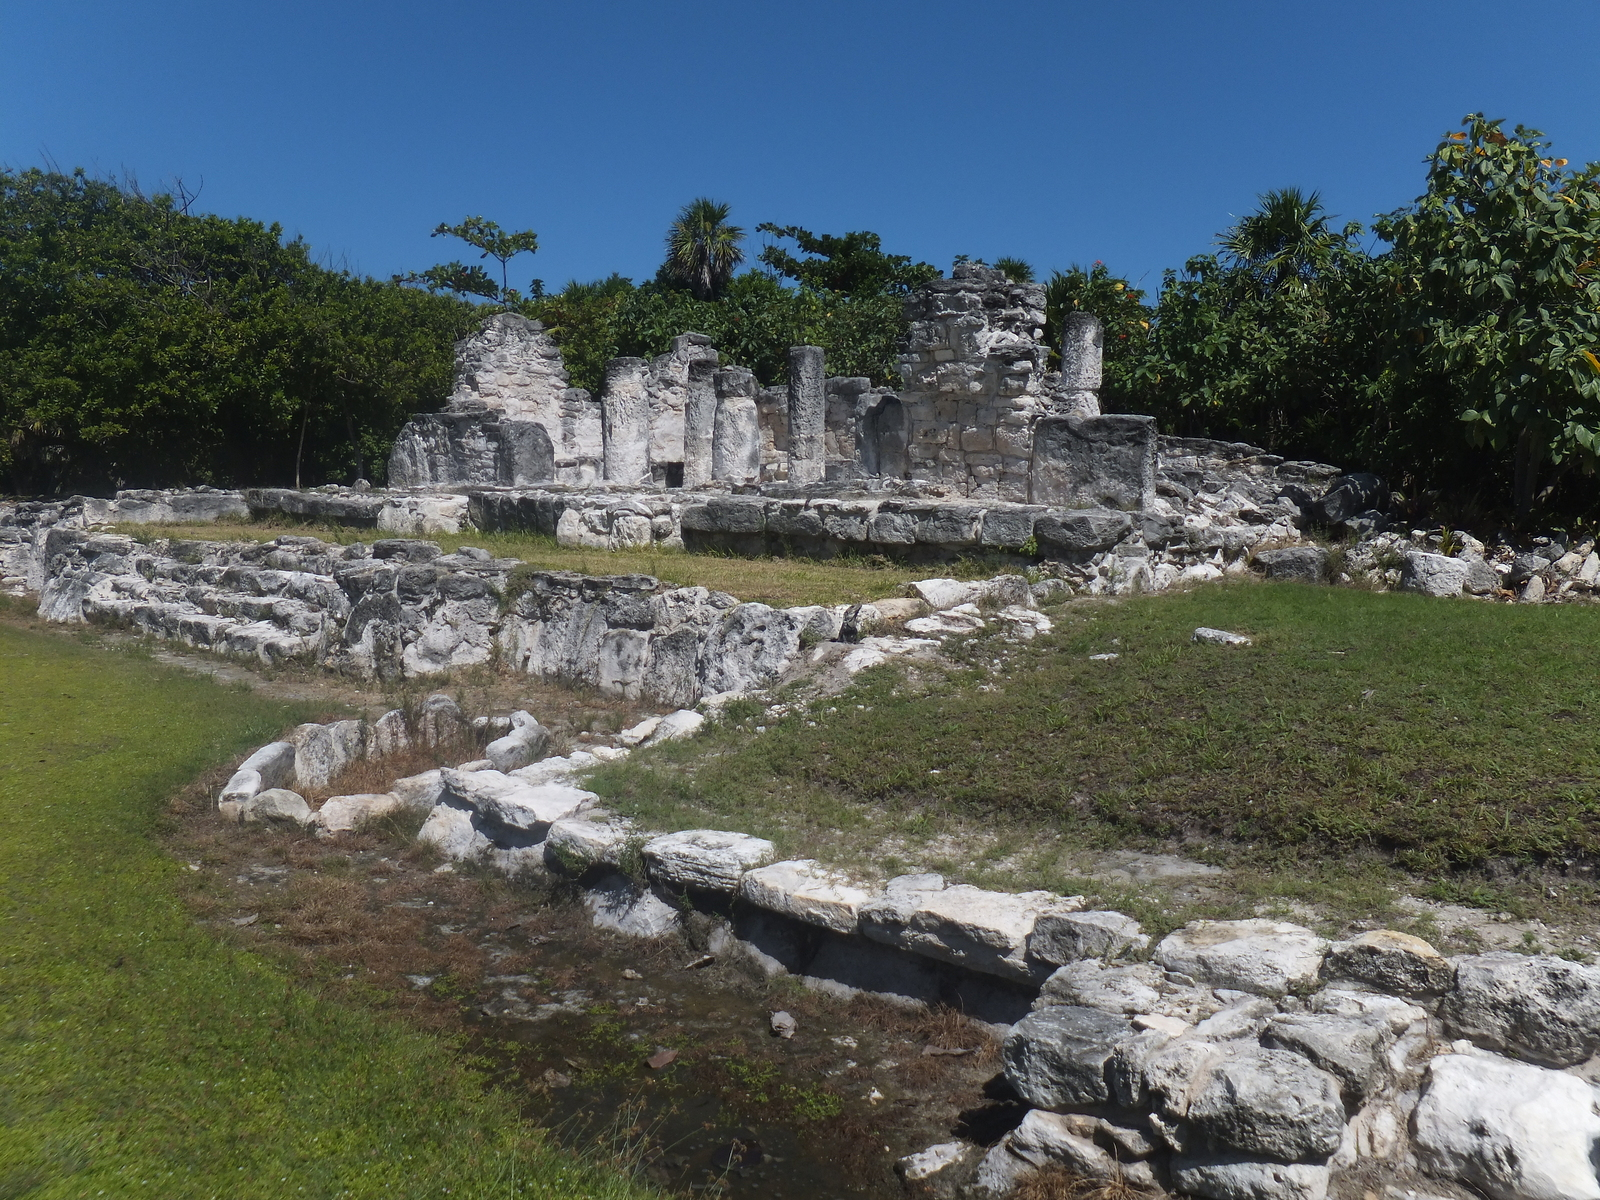 Cancun: Iguanas and History at El Rey Ruins